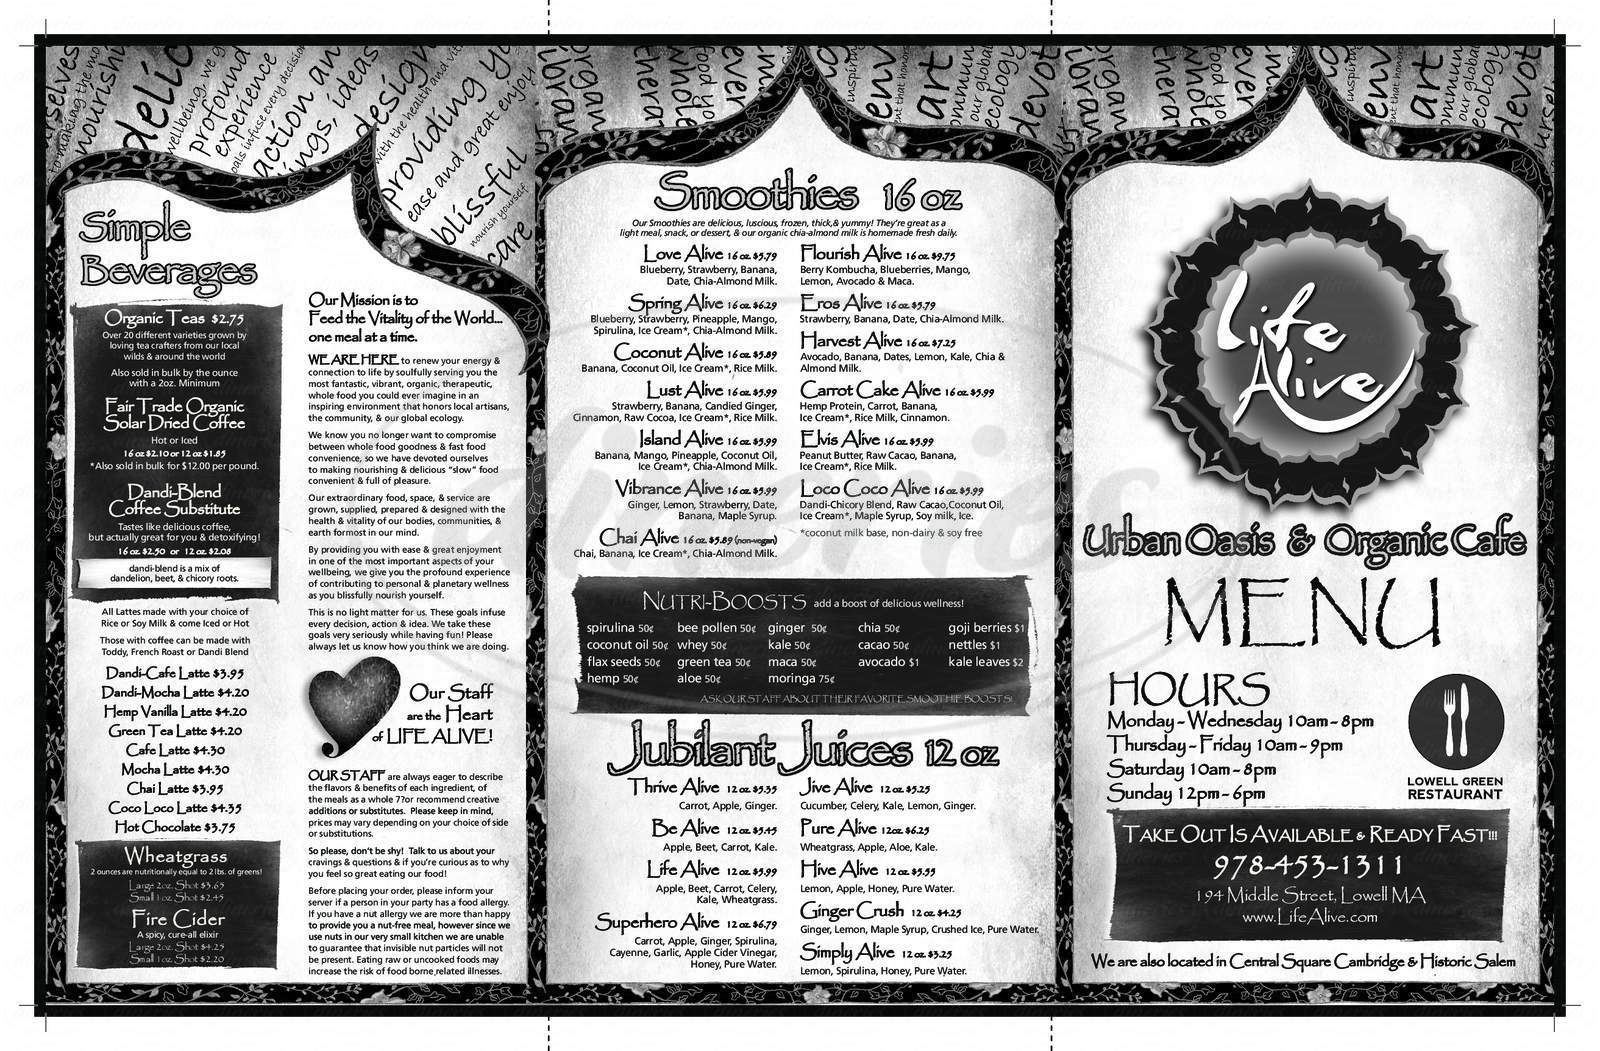 menu for Life Alive